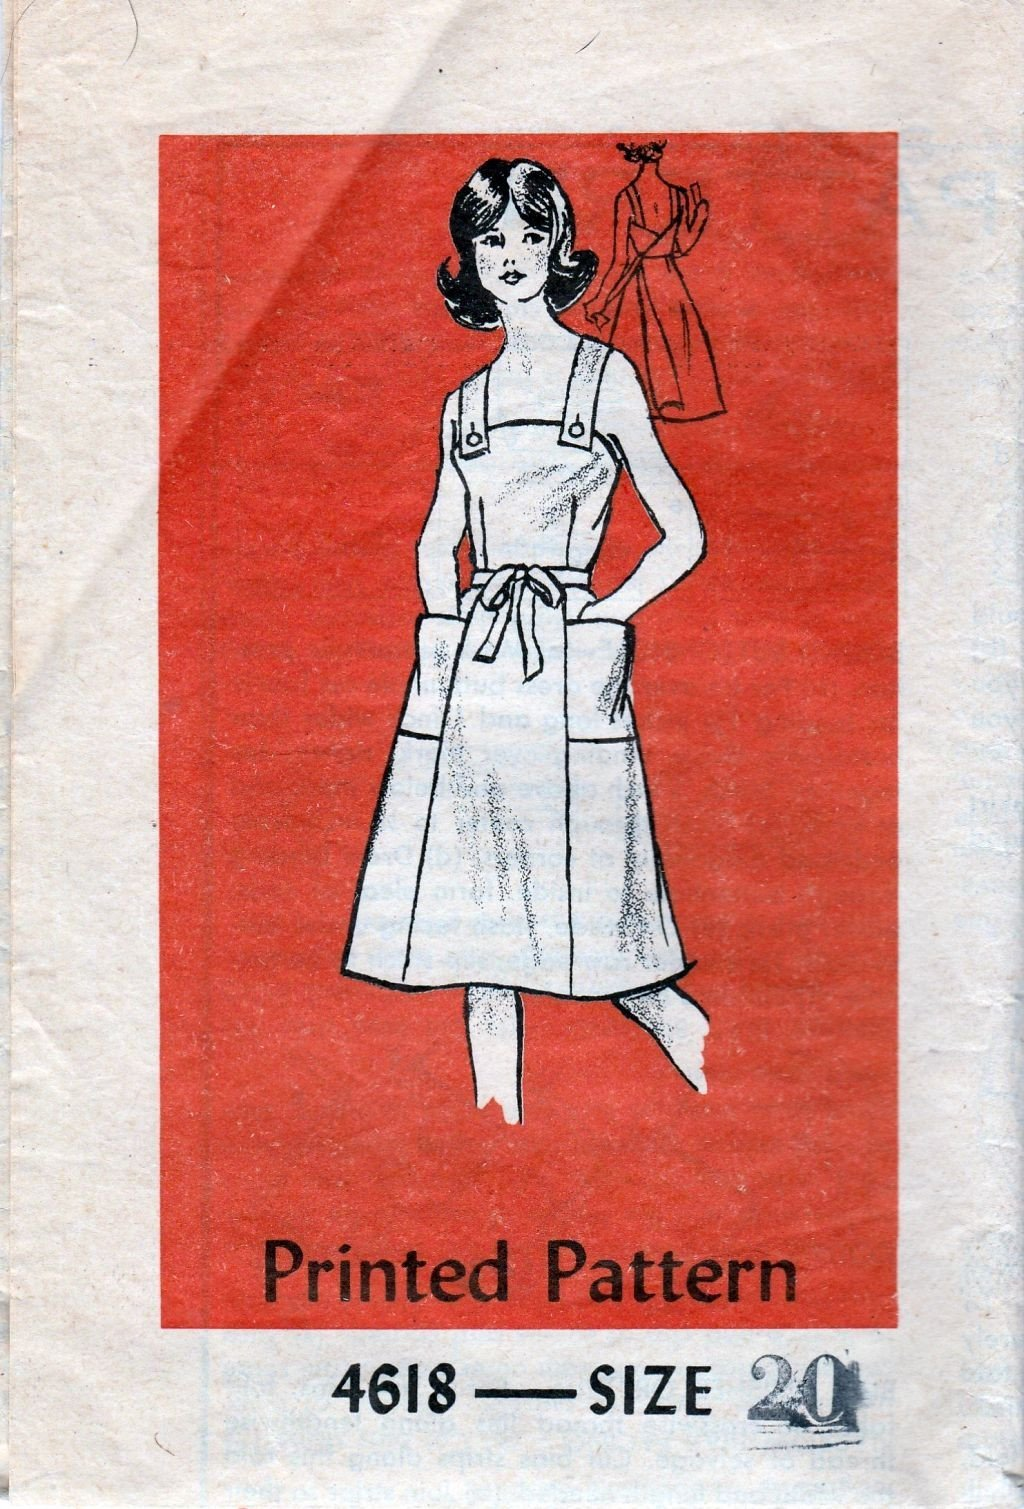 Mail Order 4618 Anne Adams Vintage 1970's Sewing Pattern Ladies Back Wrap Dress - VintageStitching - Vintage Sewing Patterns